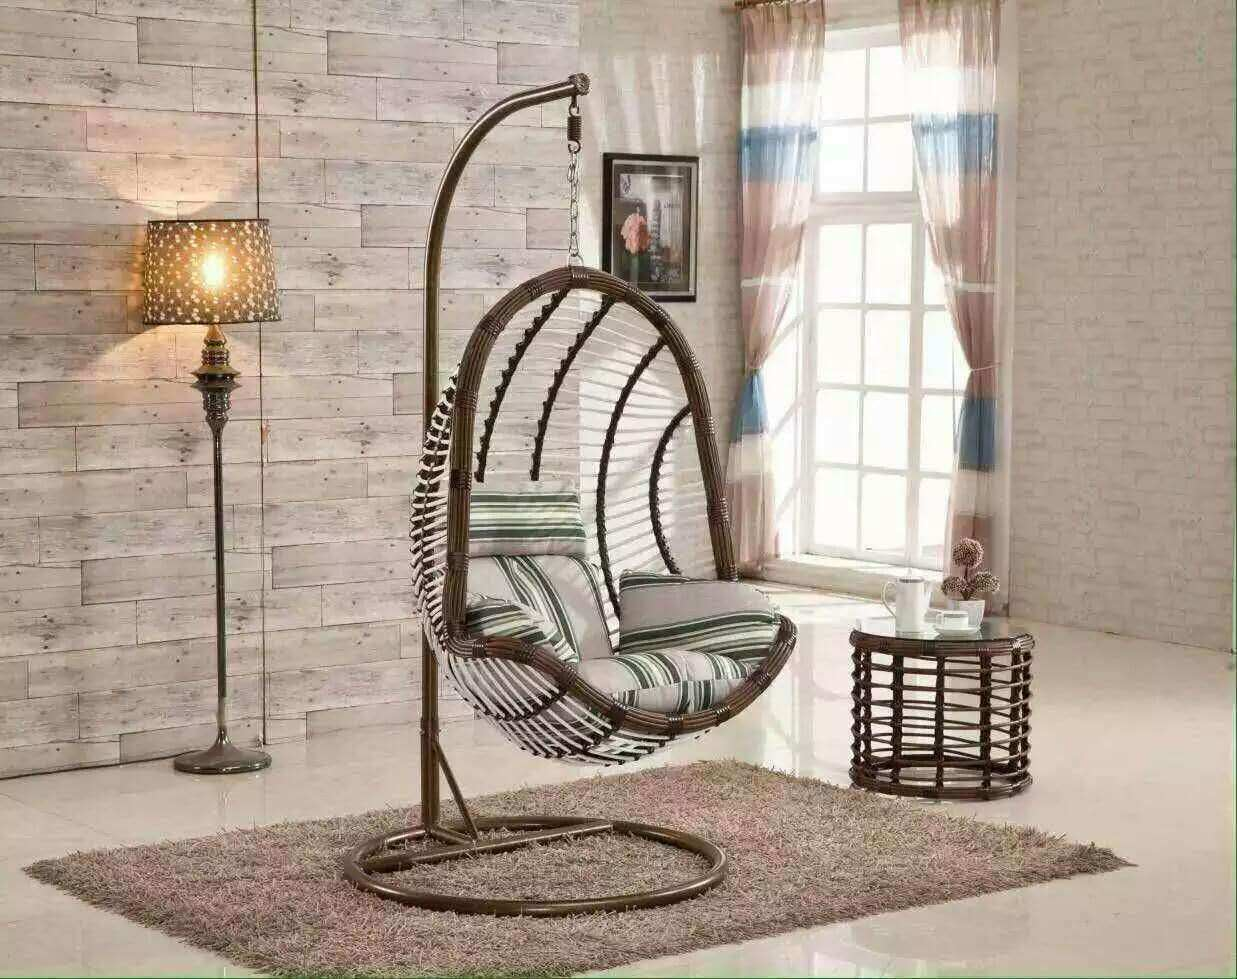 Outdoor Hanging Basket Furniture Rocking Chair Balcony Dormitory Room Hanging  Chair Indoor Cane Swing Chair